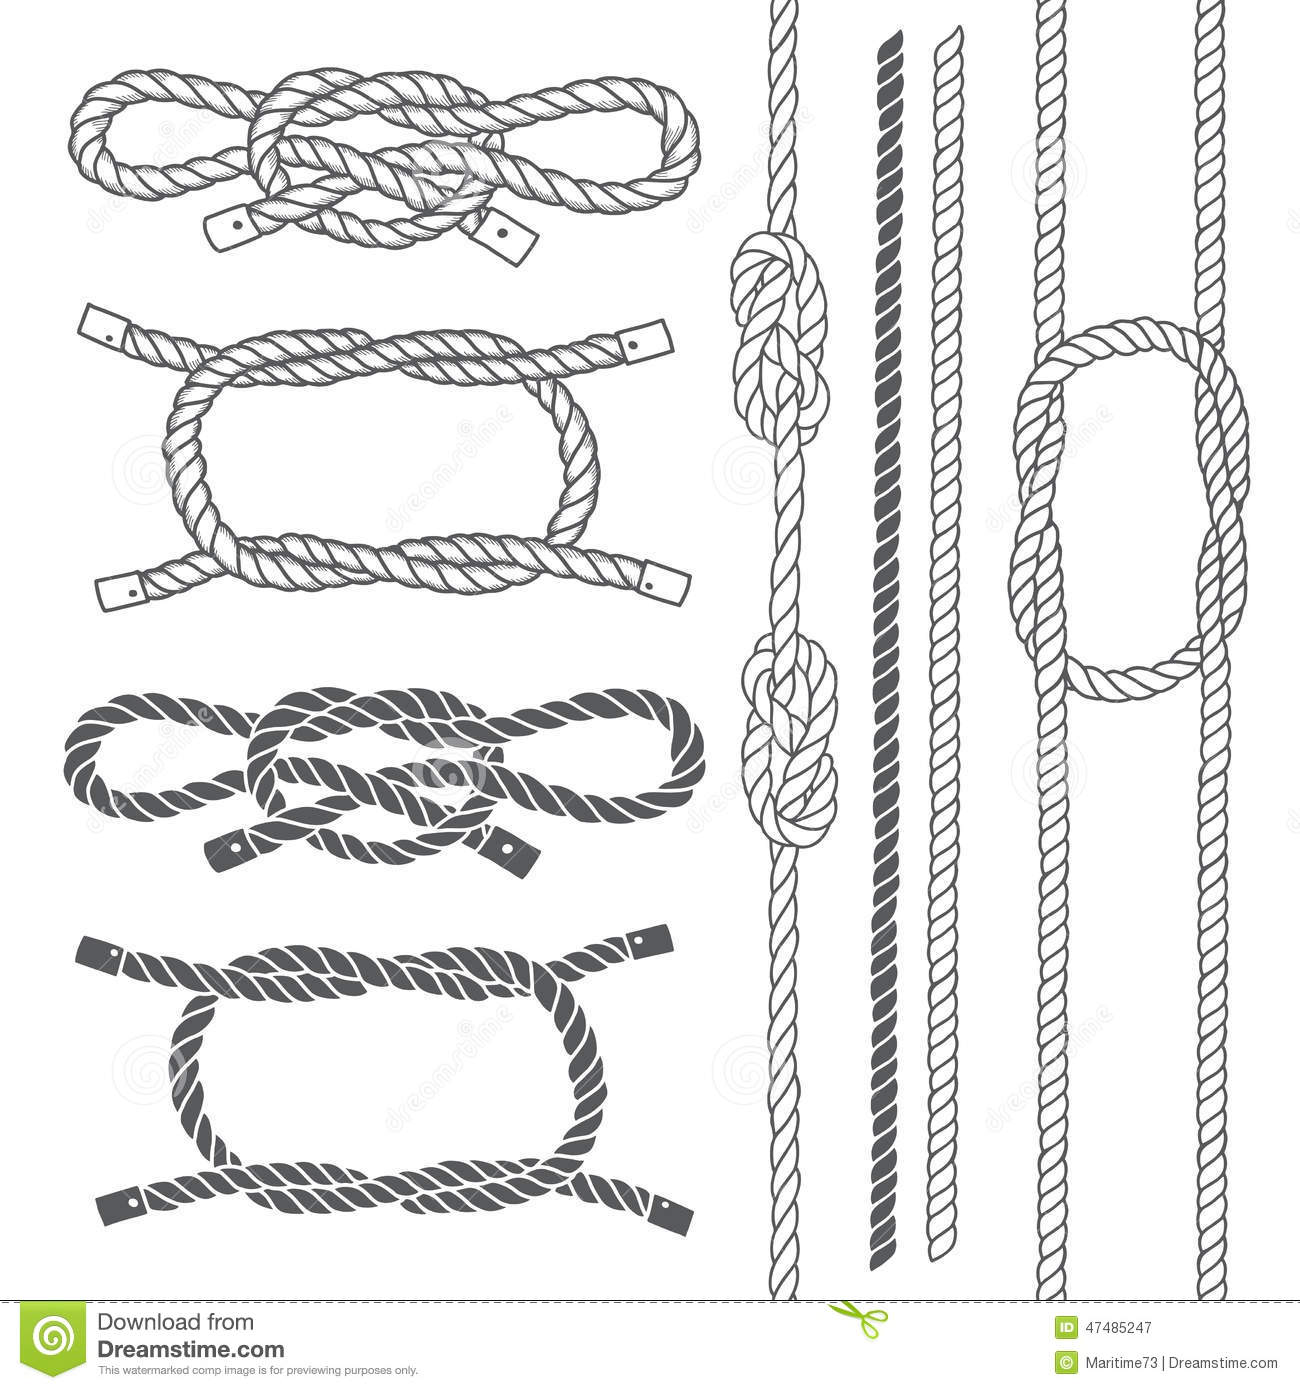 Cordage Marin Décoration Set Of Marine Rope Knots Vector Elements On A White